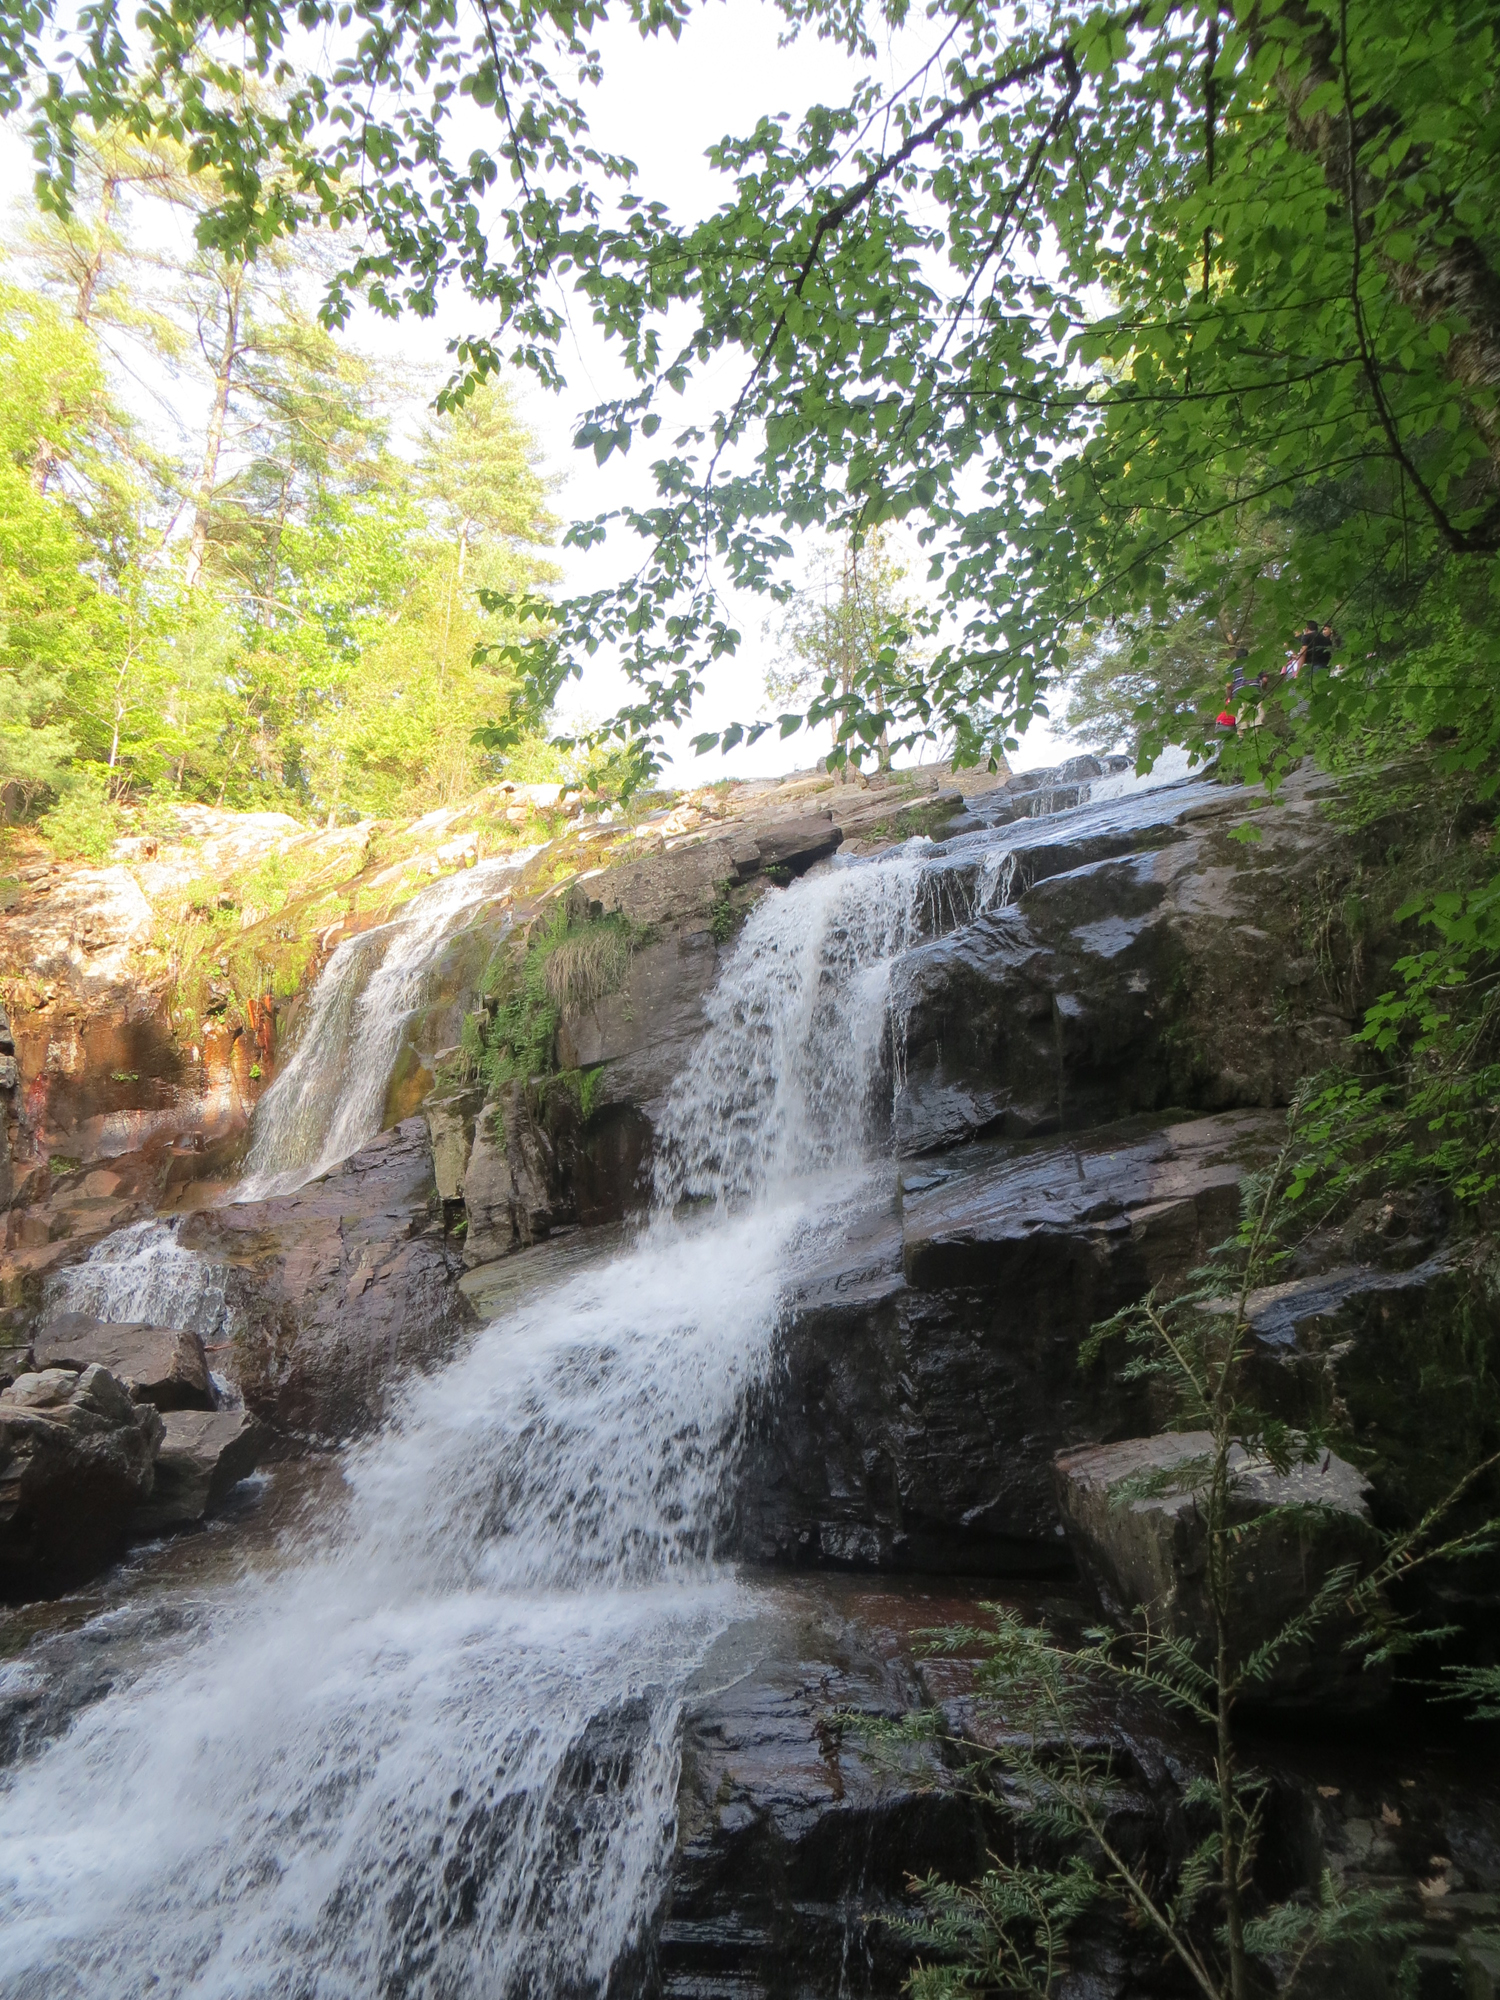 rock falls Best of rock falls: find must-see tourist attractions and things to do in rock falls, illinois from 63 rock falls attractions, yelp helps you discover popular restaurants, hotels, tours, shopping, and nightlife for your vacation.